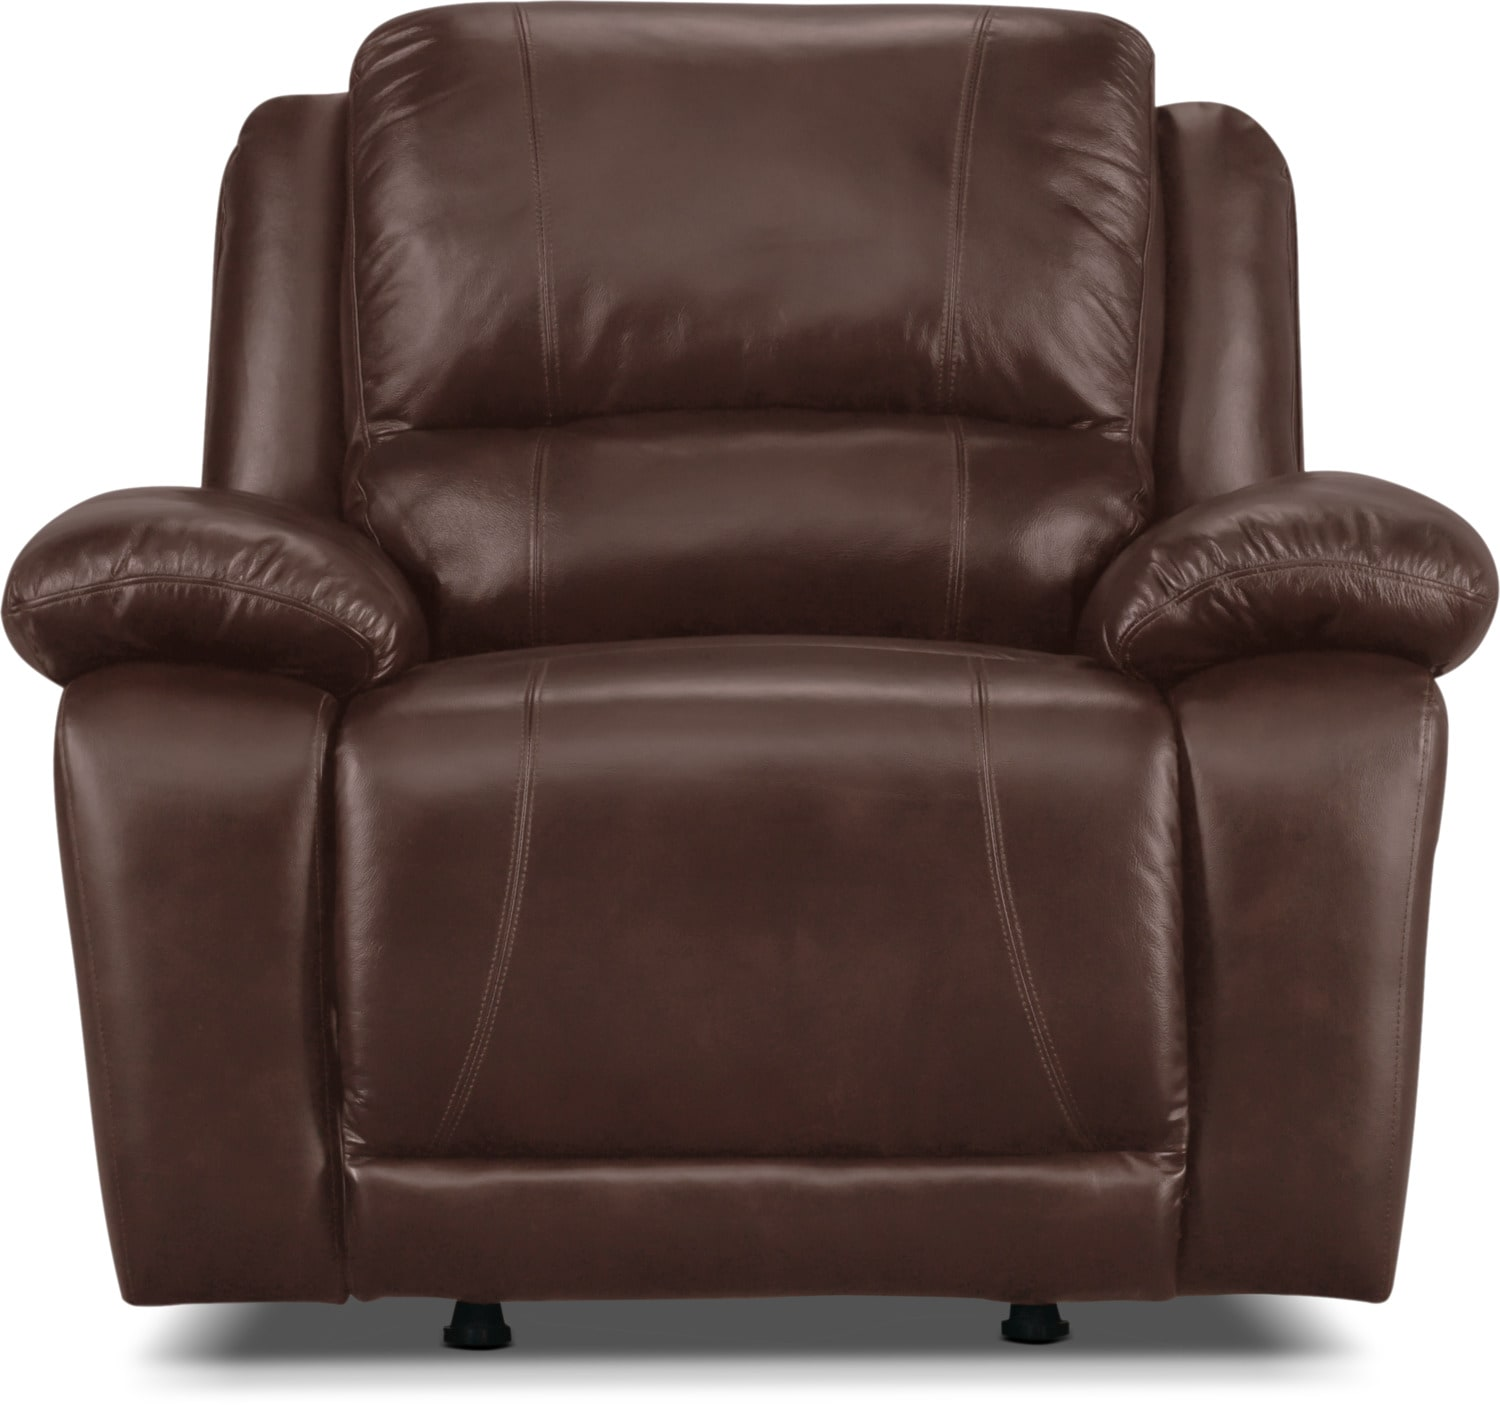 Living Room Furniture - Marco Genuine Leather Rocker Reclining Chair - Chocolate